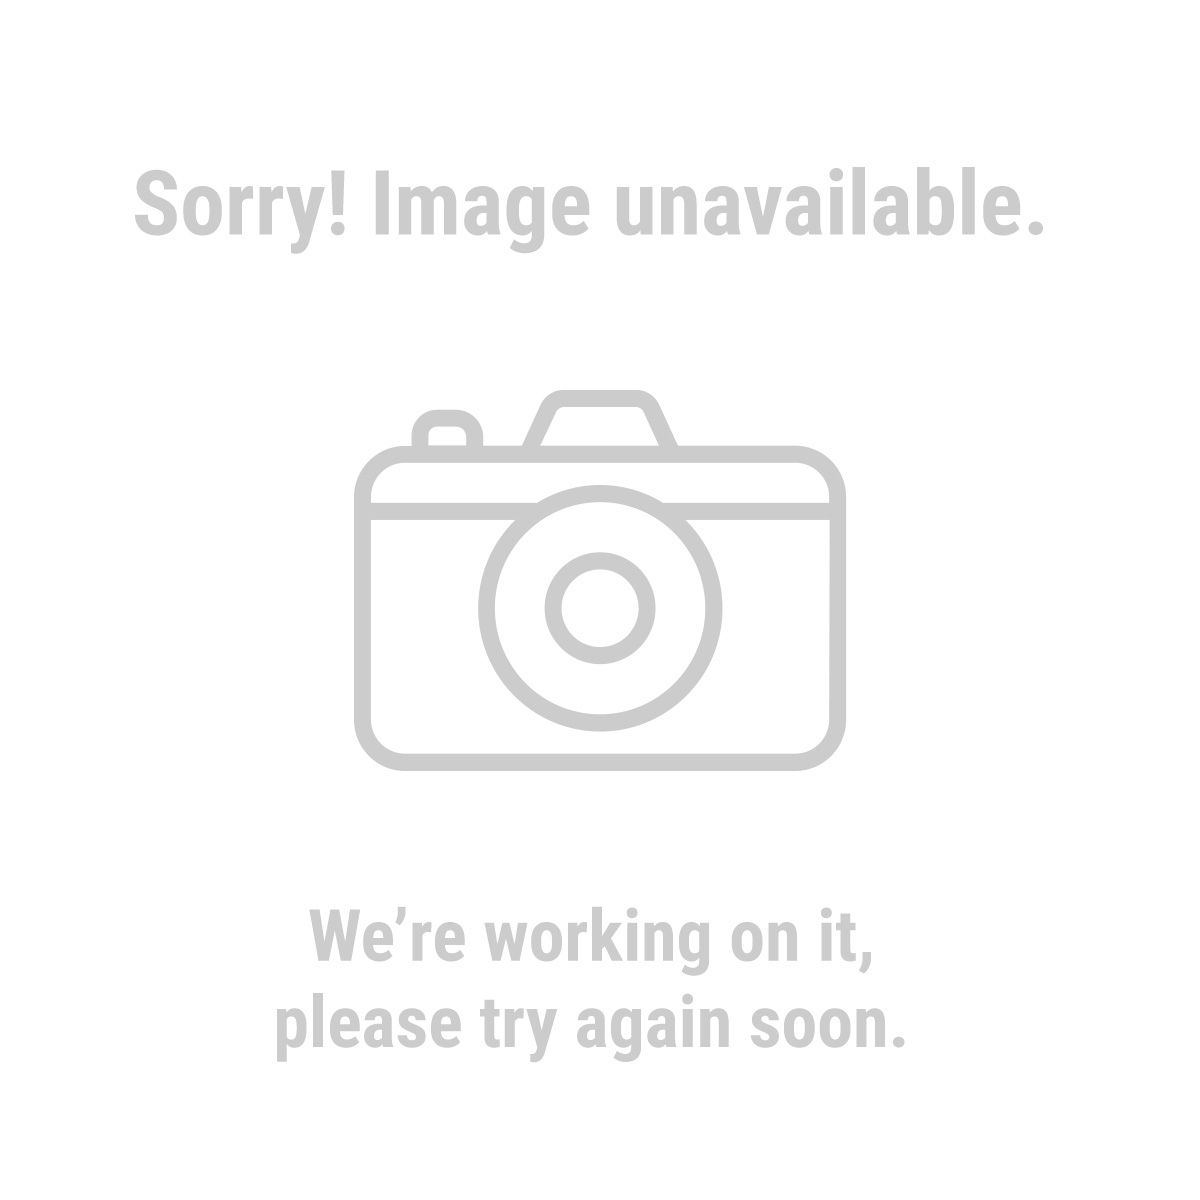 Pittsburgh Motorcycle 95896 Low Profile Motorcycle Dolly